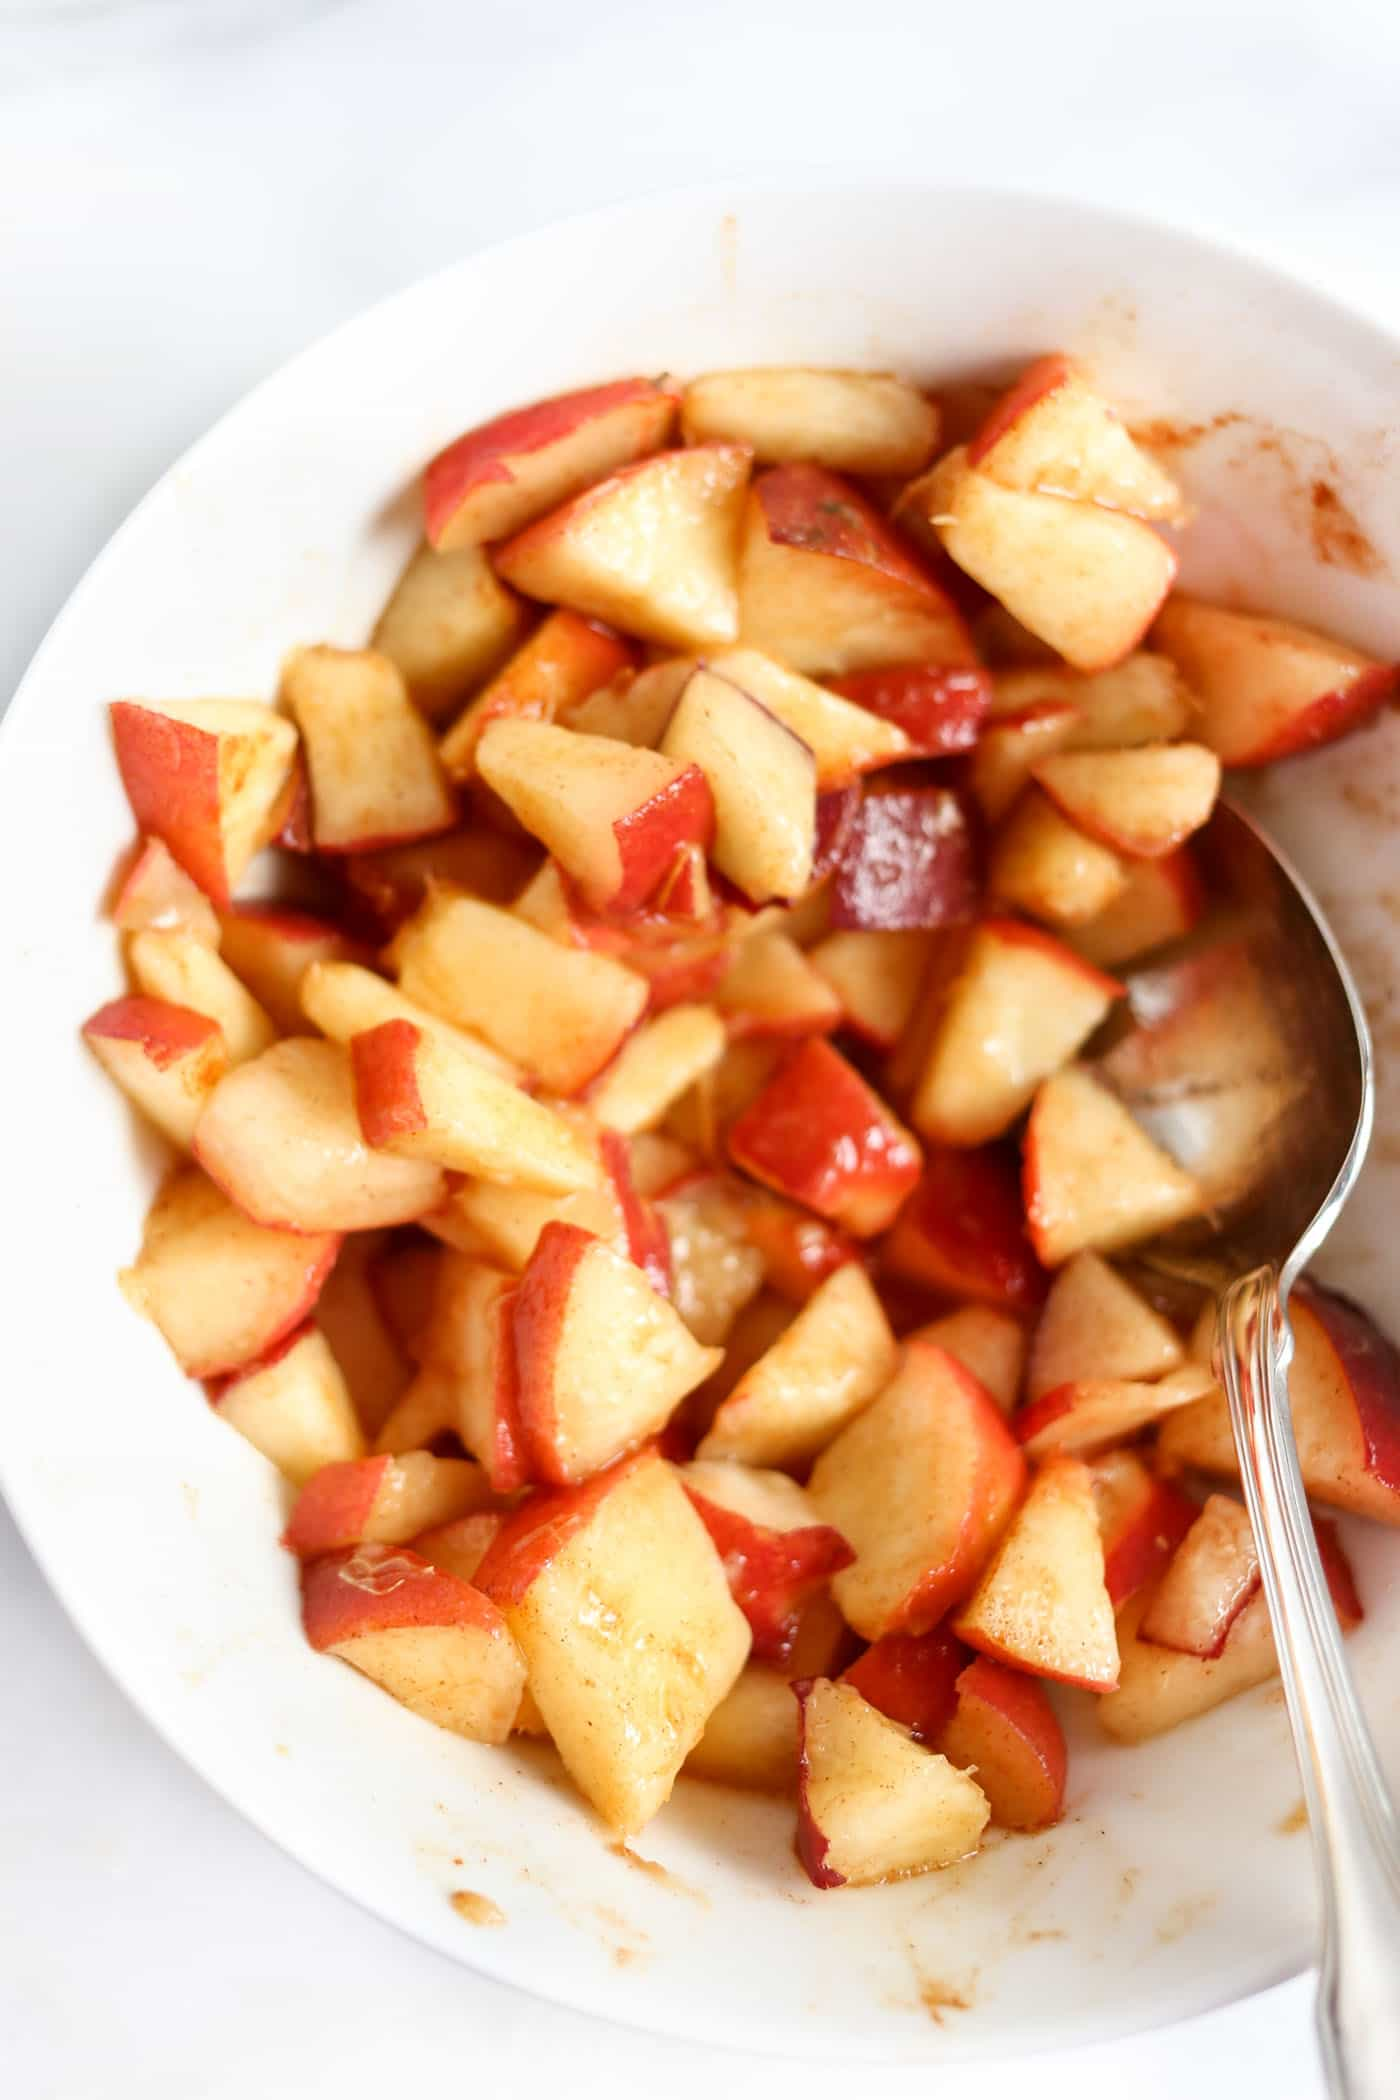 Cinnamon is all you need to make the perfect marinated peaches!